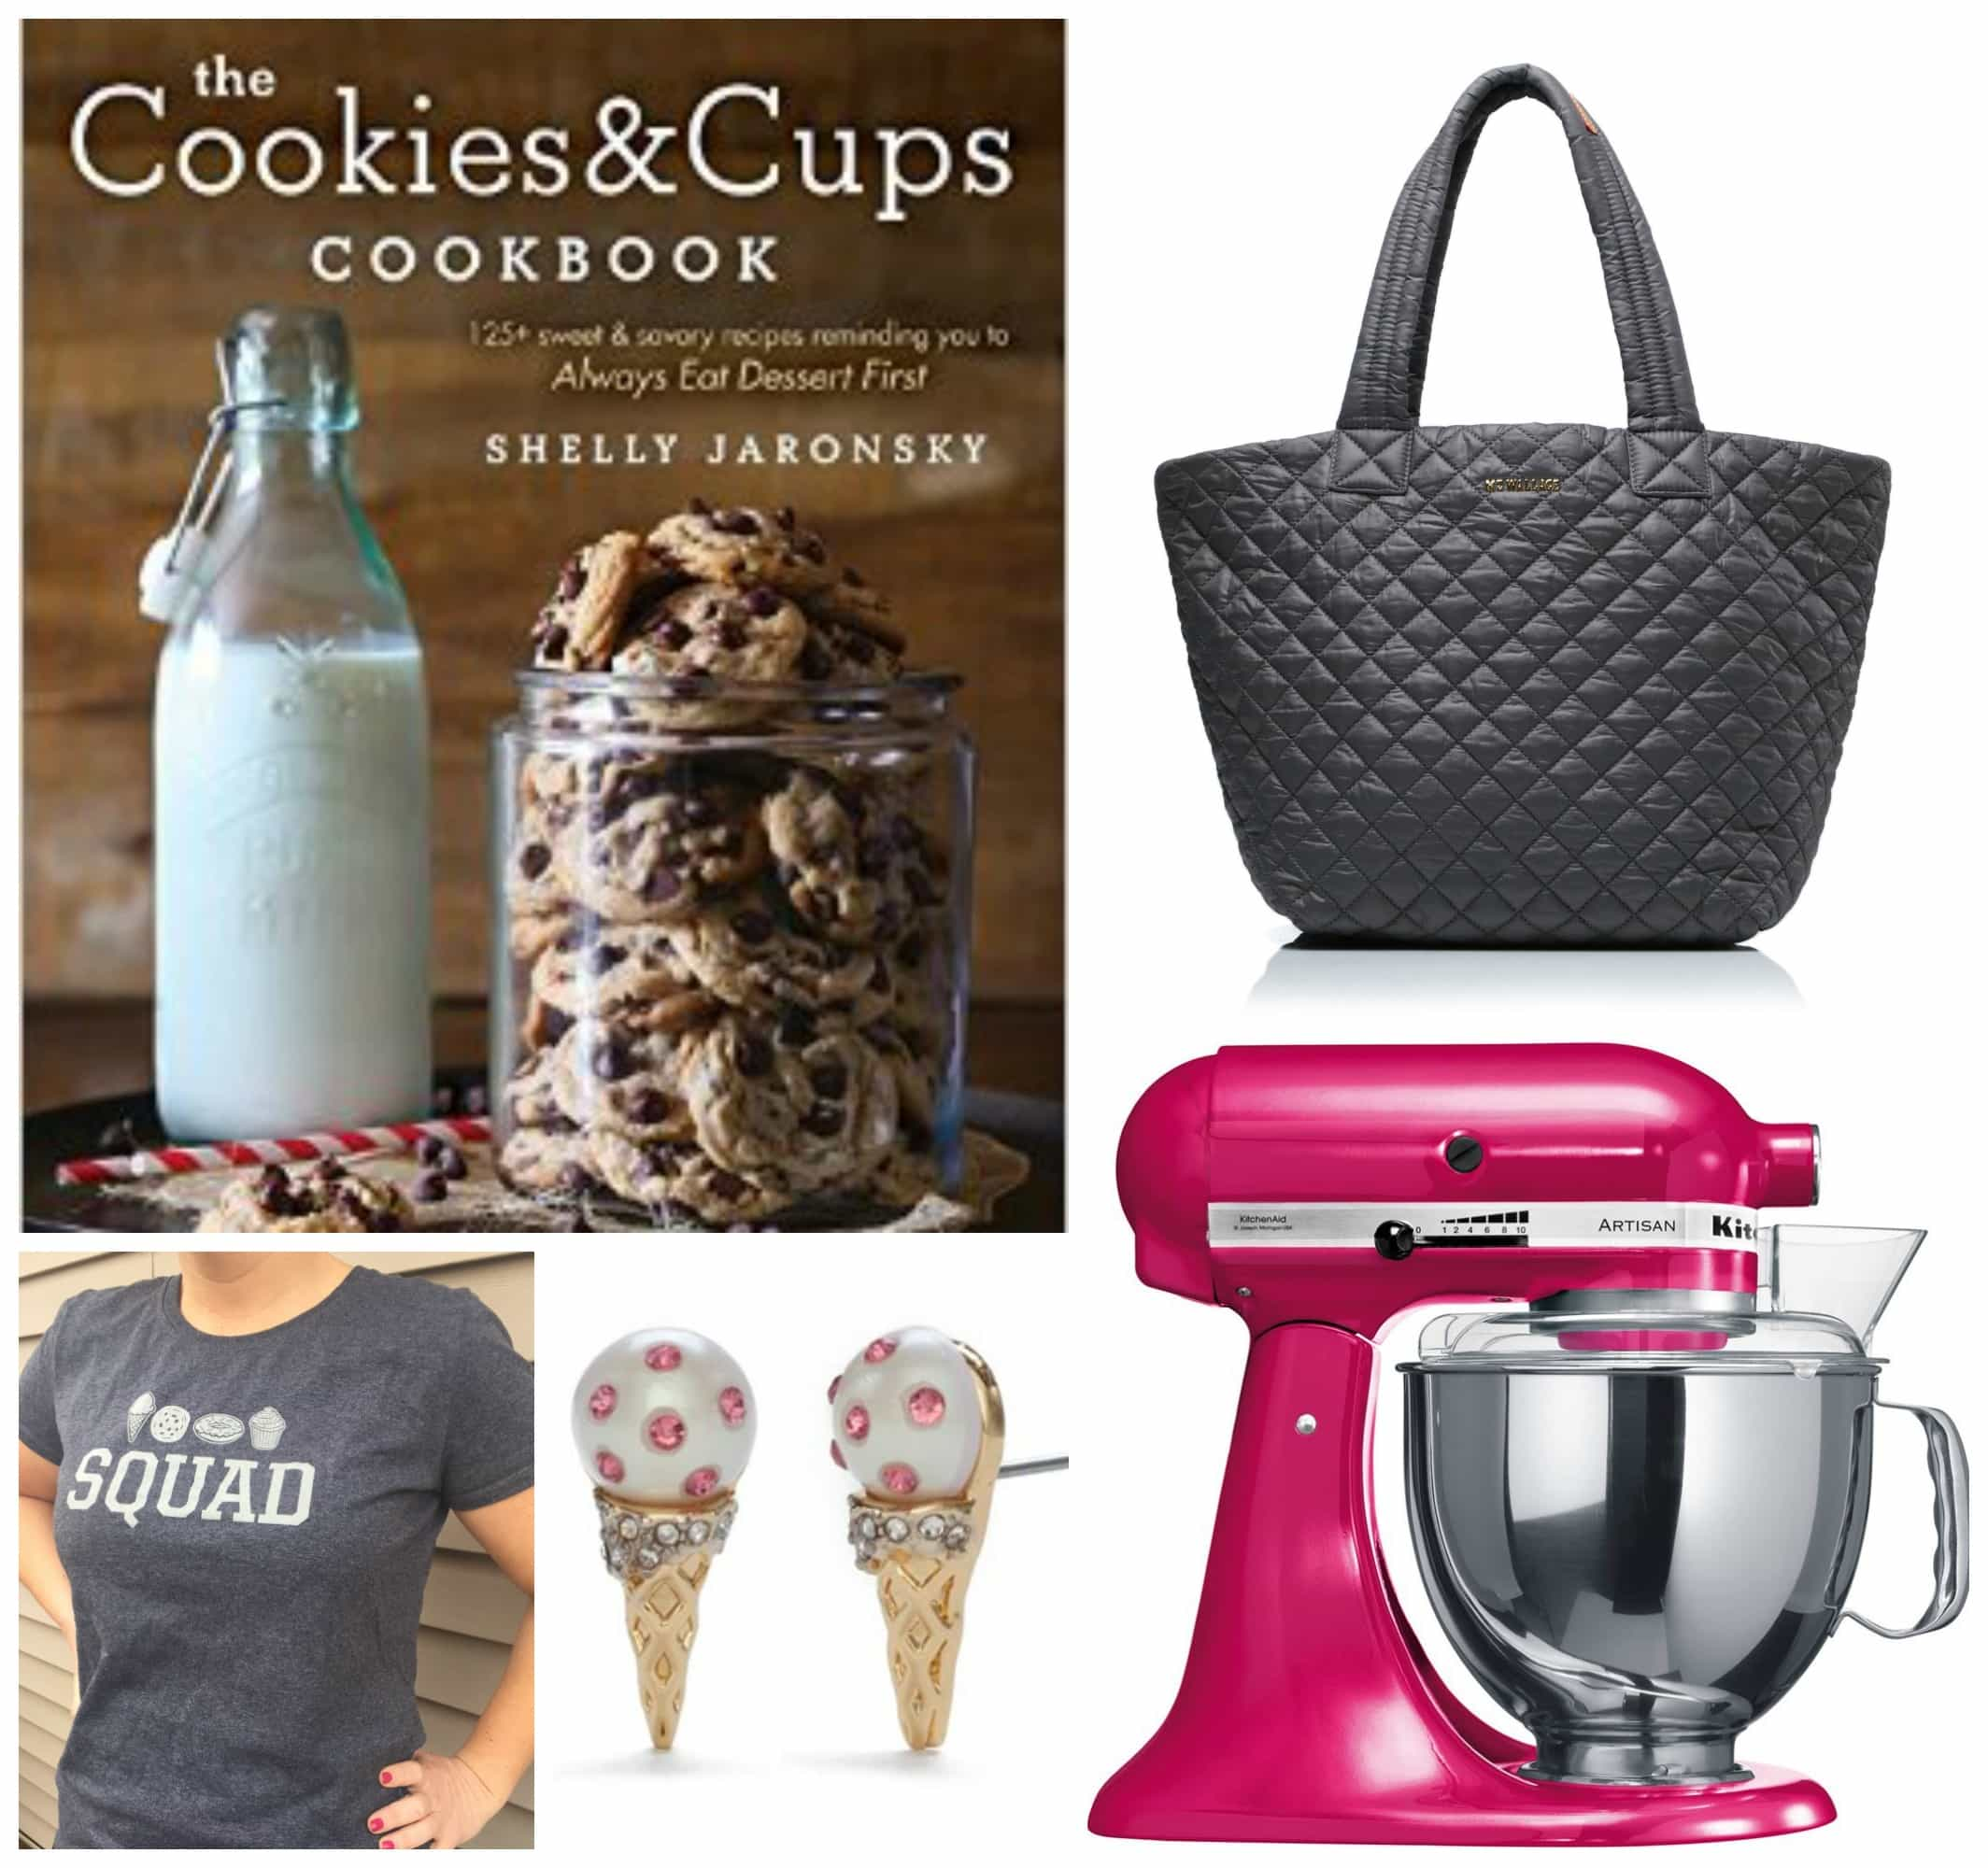 A Collage of Images of my Cookbook, a Purse, a Blender, a T-Shirt and a Pair of Ice Cream Cone Earrings